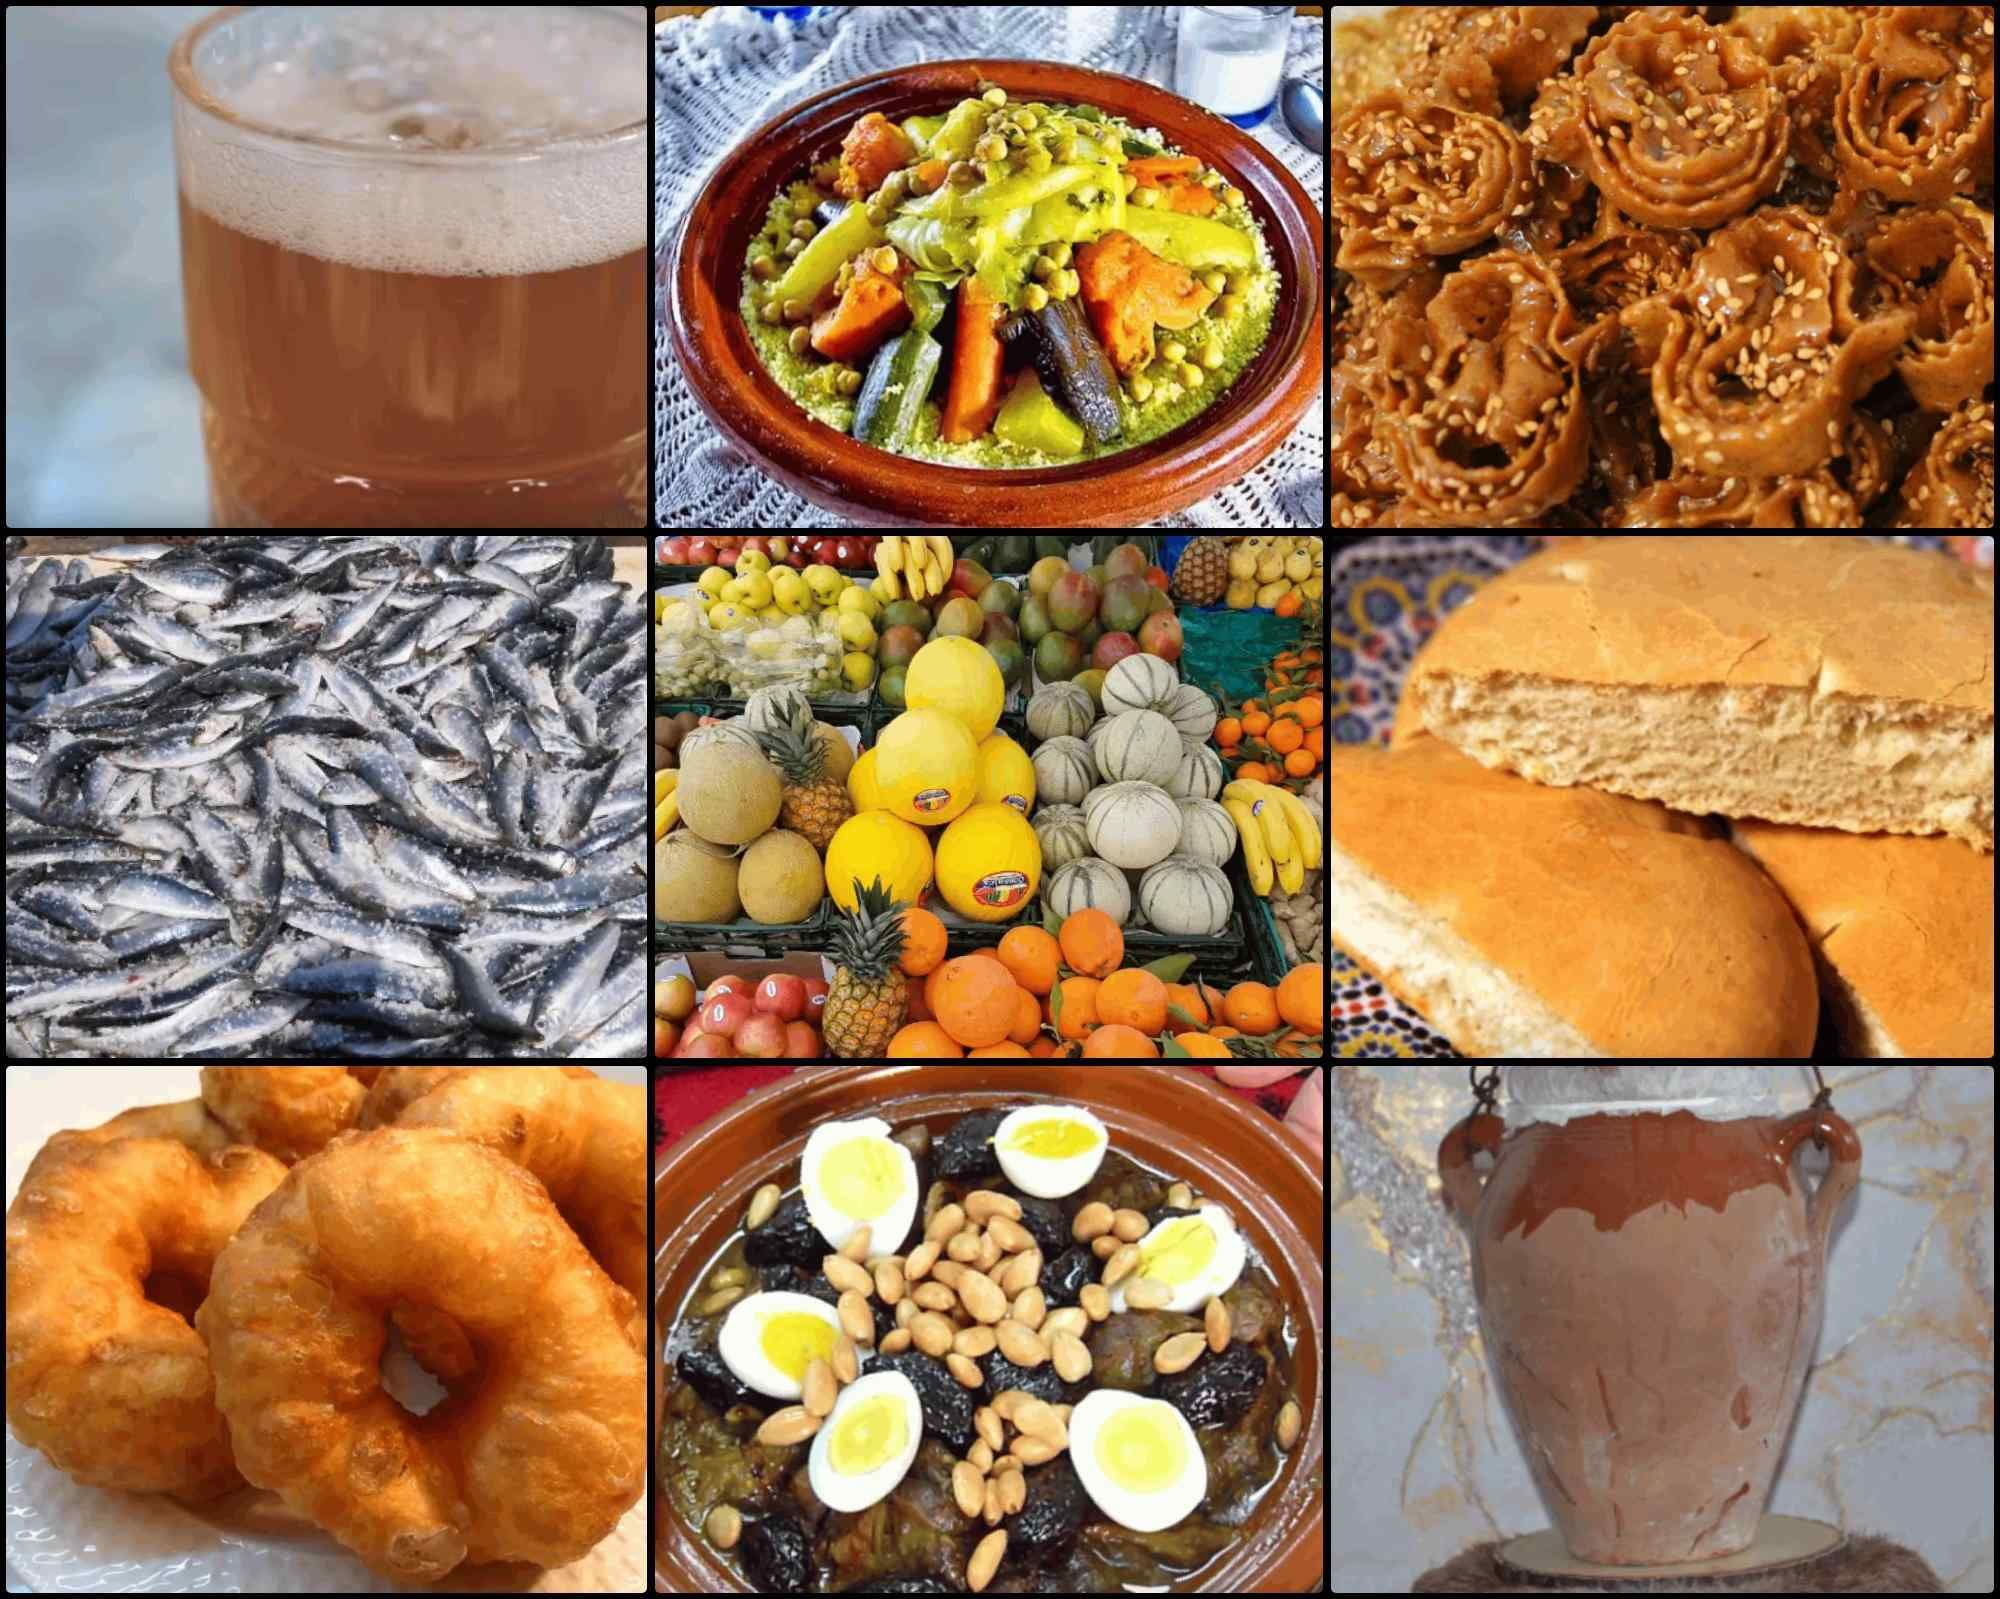 Moroccan Food The Number 1 Guide For The Best Eating Travel To